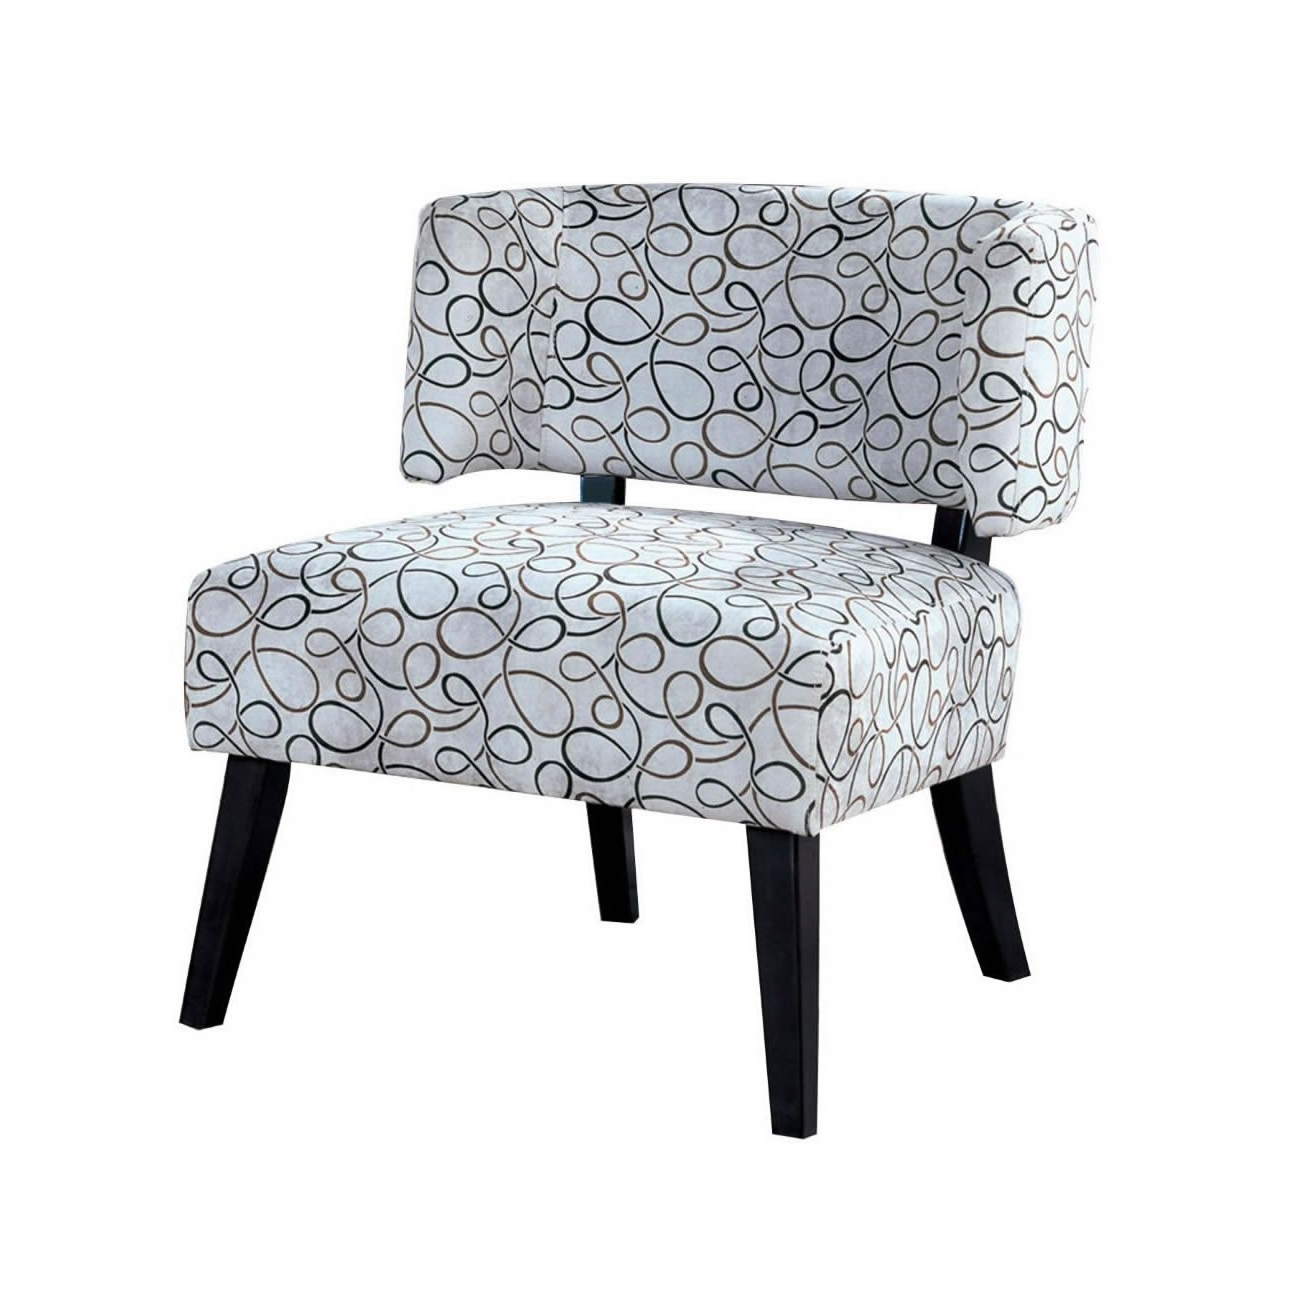 Features: Transitional Styling Curved Back And Full Size Seat Throughout Widely Used Pilo Grey Side Chairs (View 13 of 20)